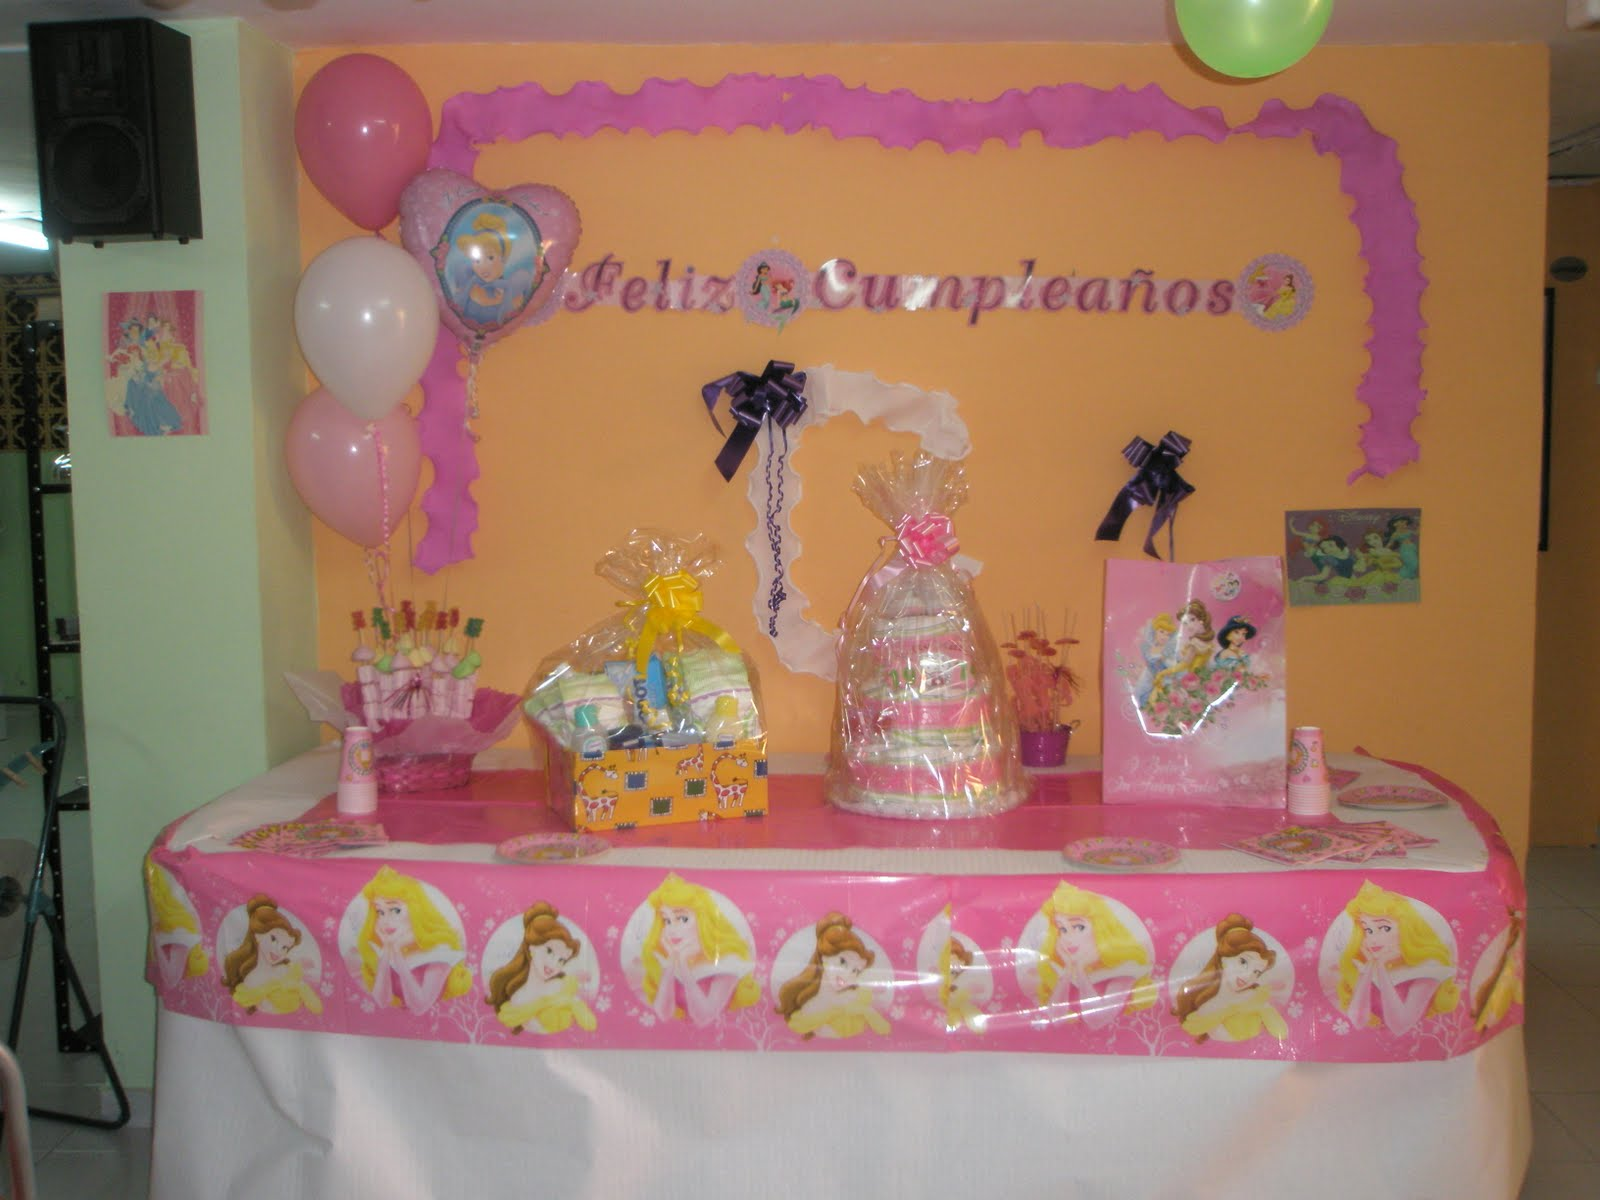 Decoracion de cumpleanos cake ideas and designs for Decoracion cumpleanos nina 2 anos